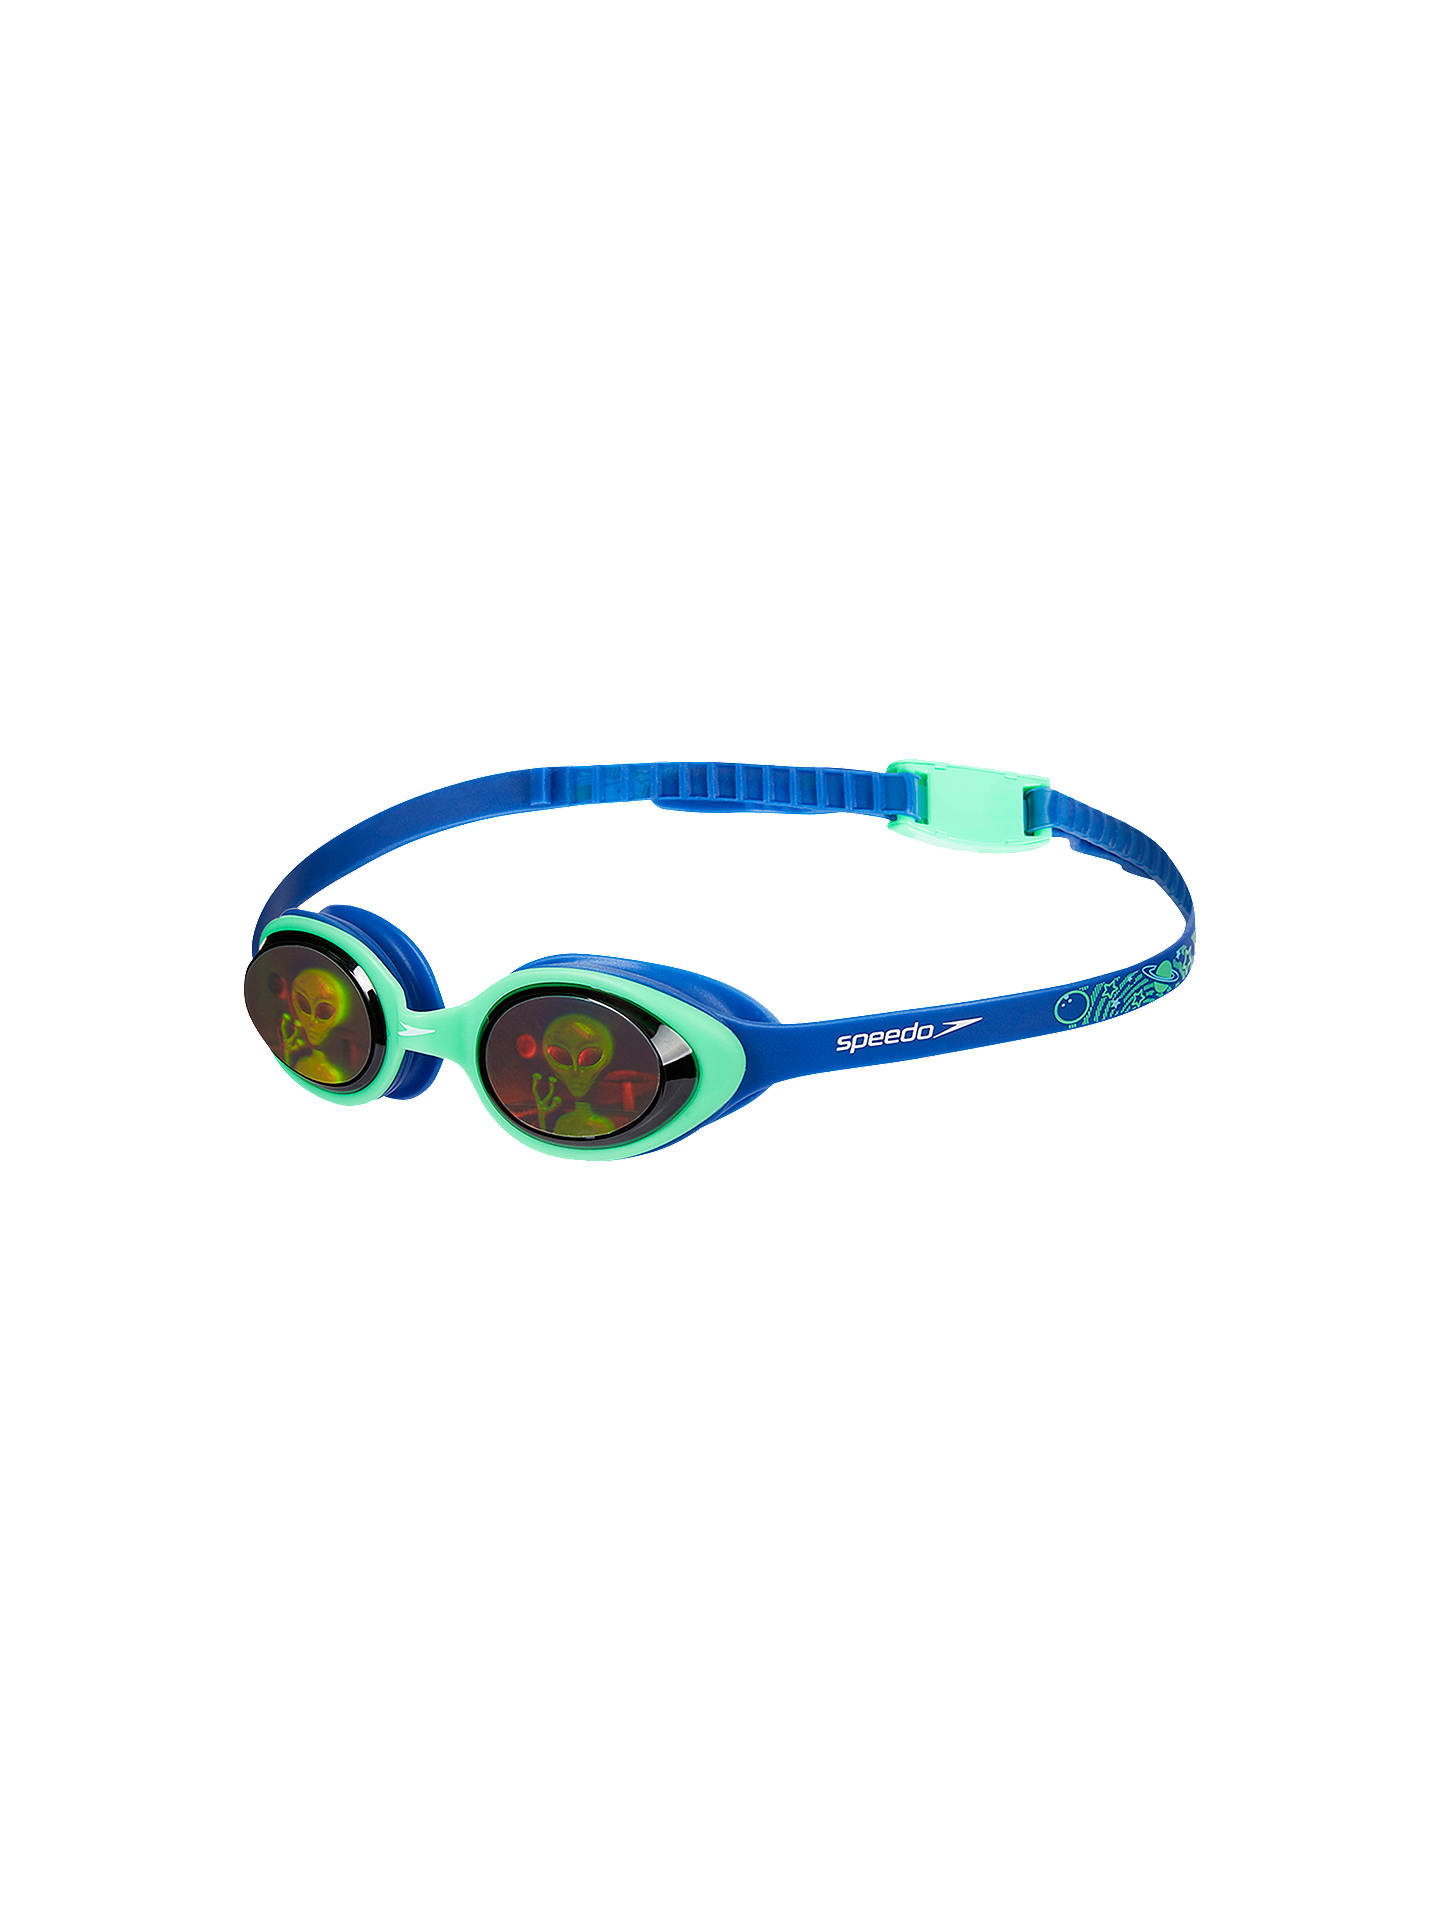 BuySpeedo Illusion 3D Junior Goggles, 6-14 years old, Blue Mid Online at johnlewis.com